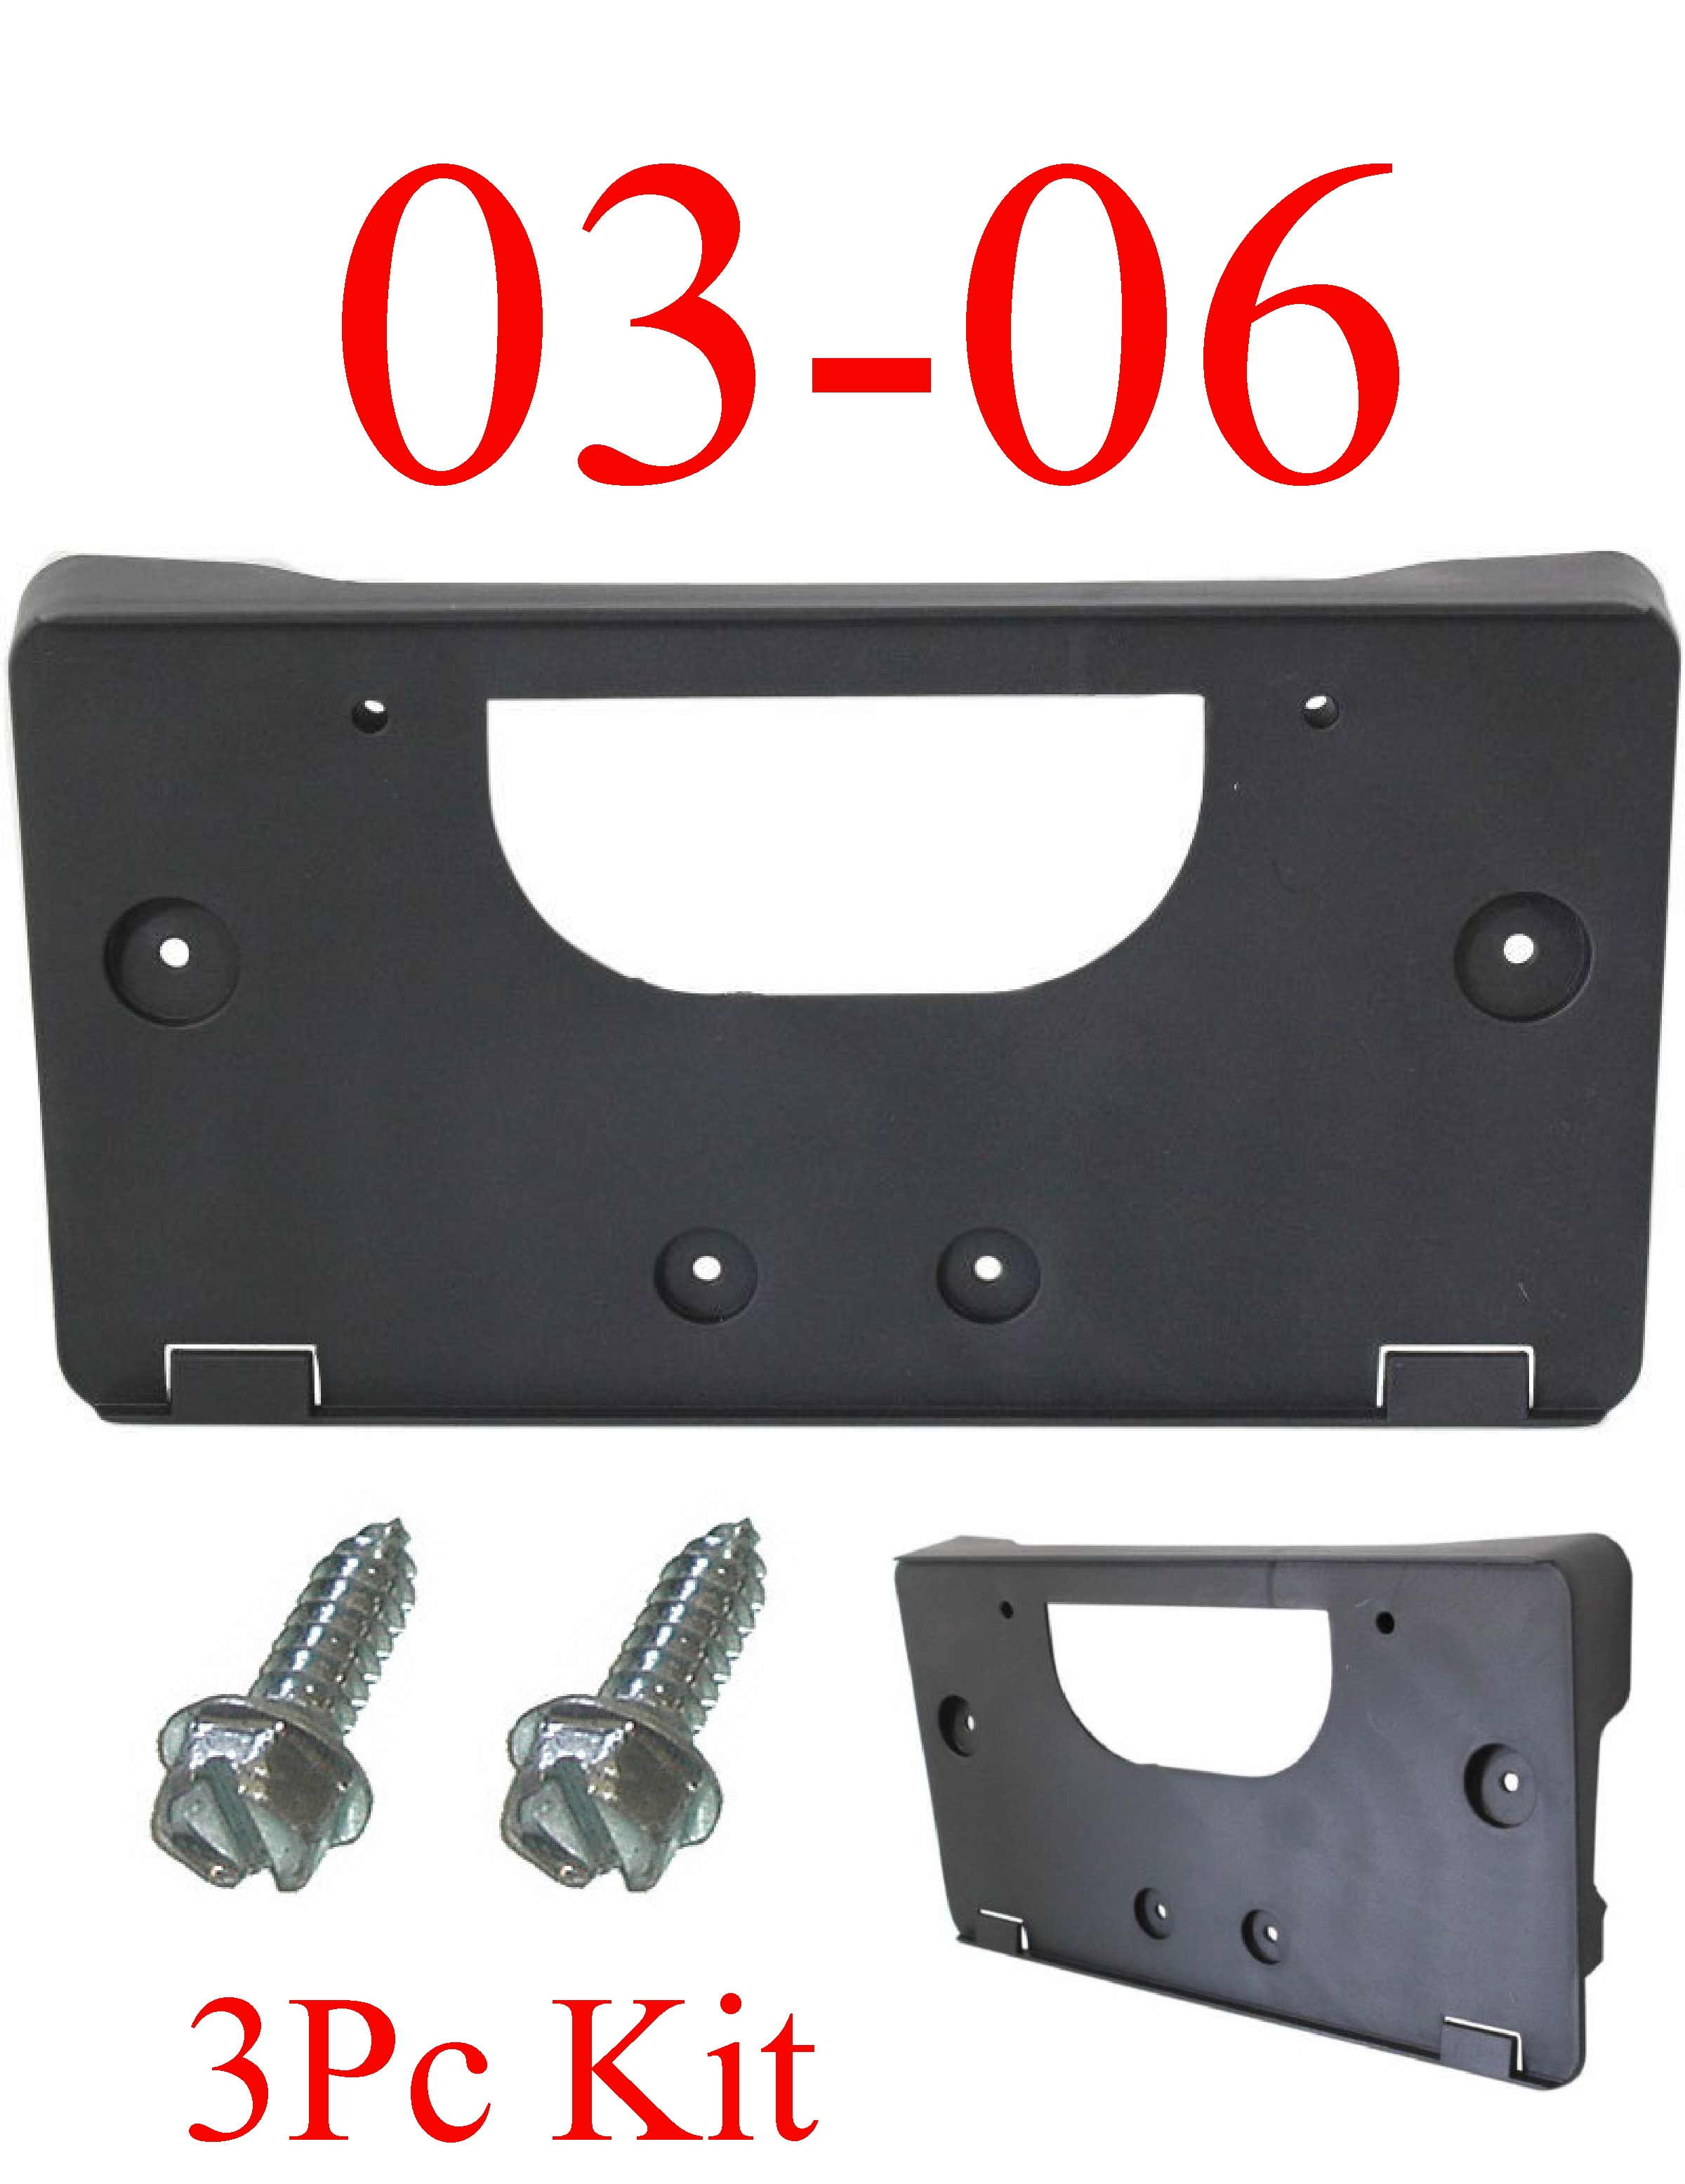 03-06 3Pc Chevy Silverado Front License Plate Bracket W Hardware